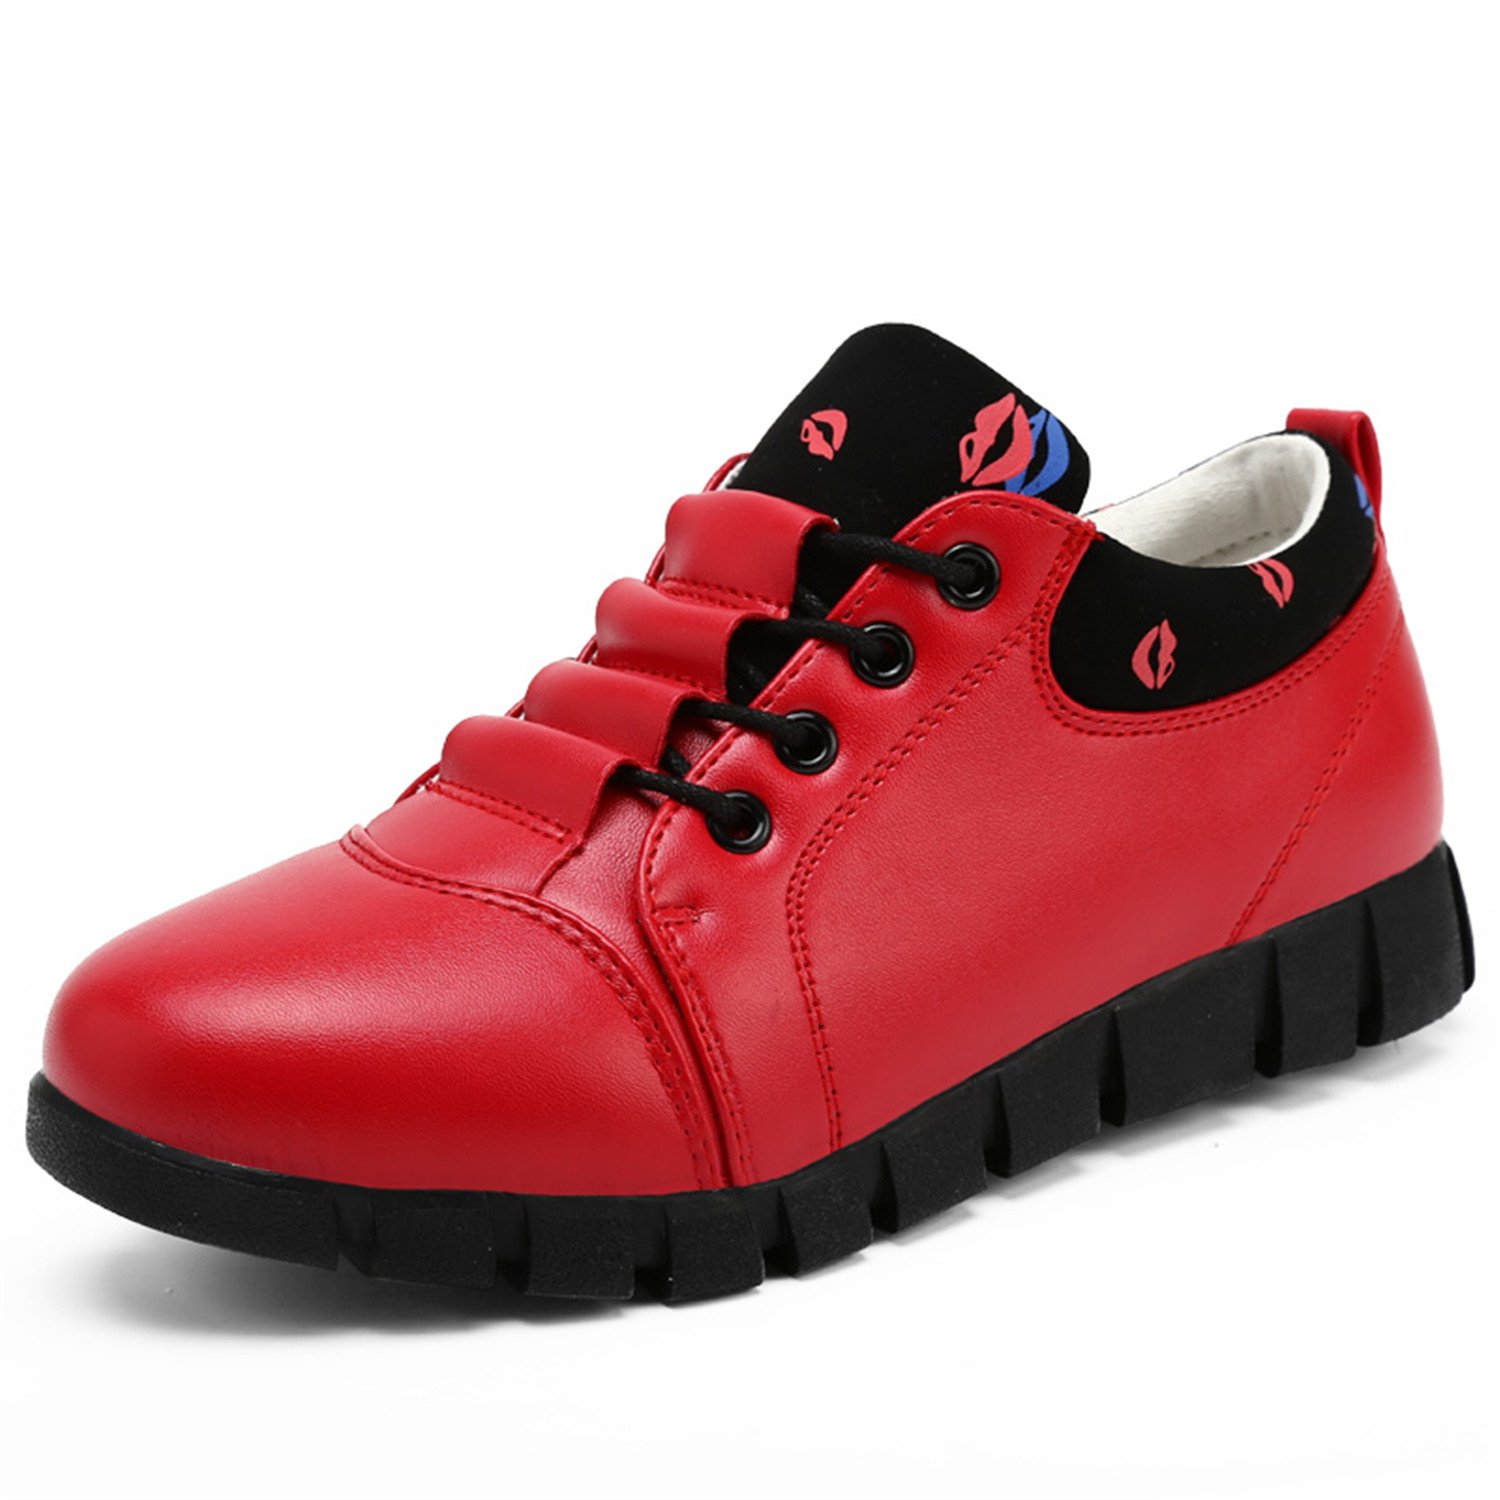 Amazon.com | Mildred Jones Women Flats Leather Zapatillas Mujer Shoes Woman Soft Womens Casual Red Shoe | Flats